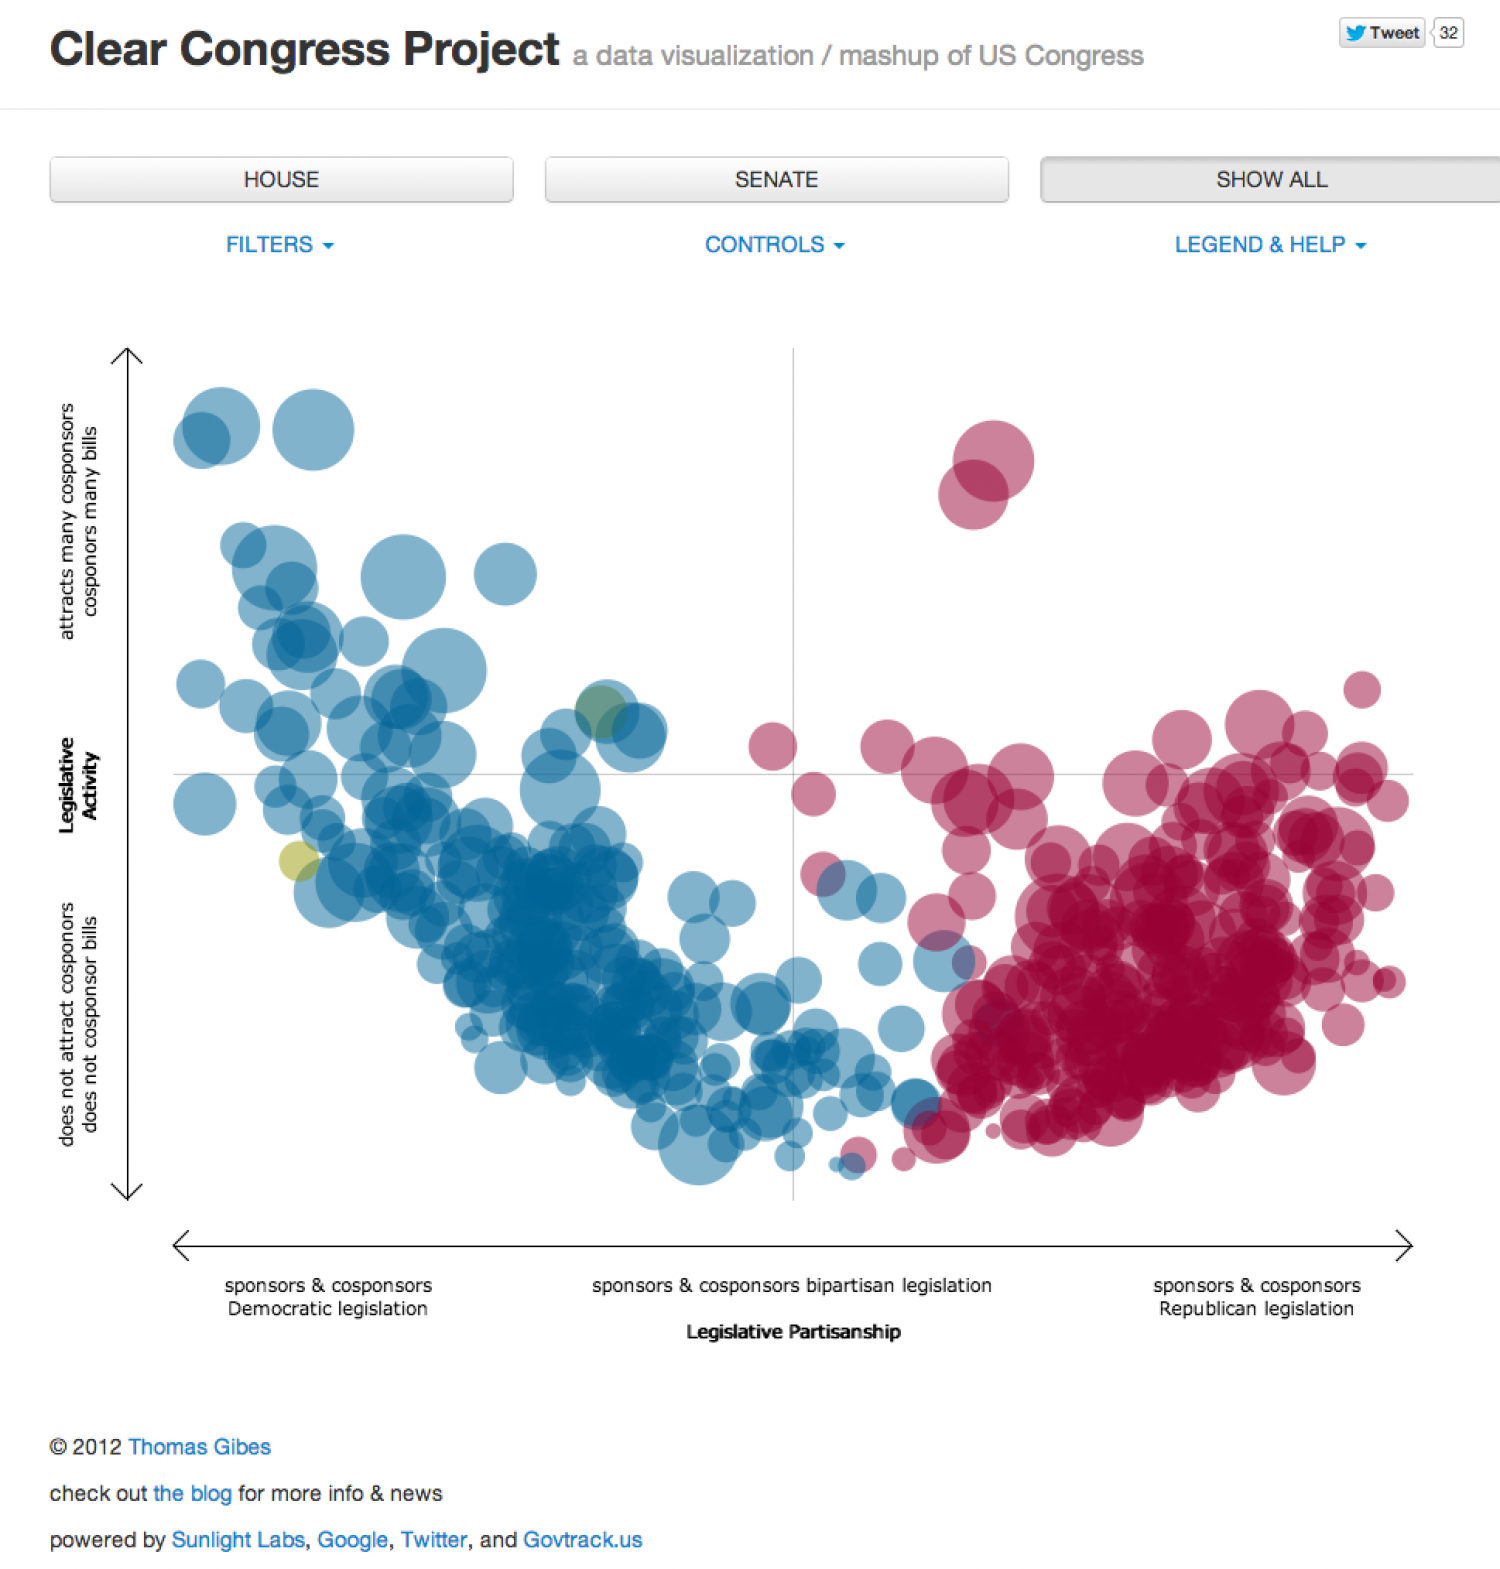 Clear Congress Project Infographic